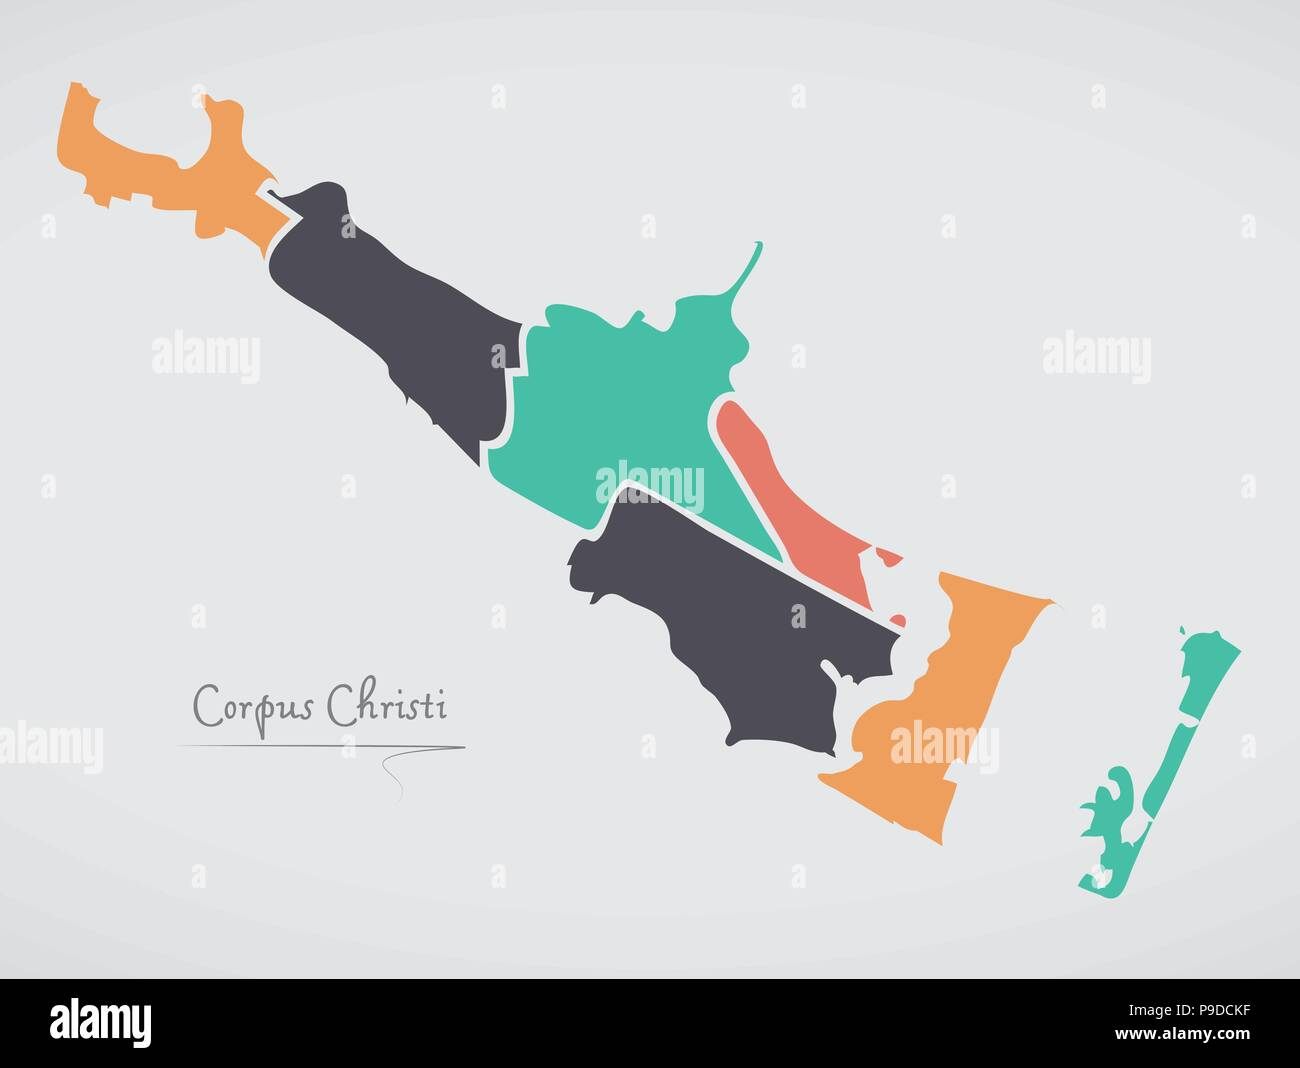 Corpus Christi Texas Map with neighborhoods and modern round shapes - Stock Vector